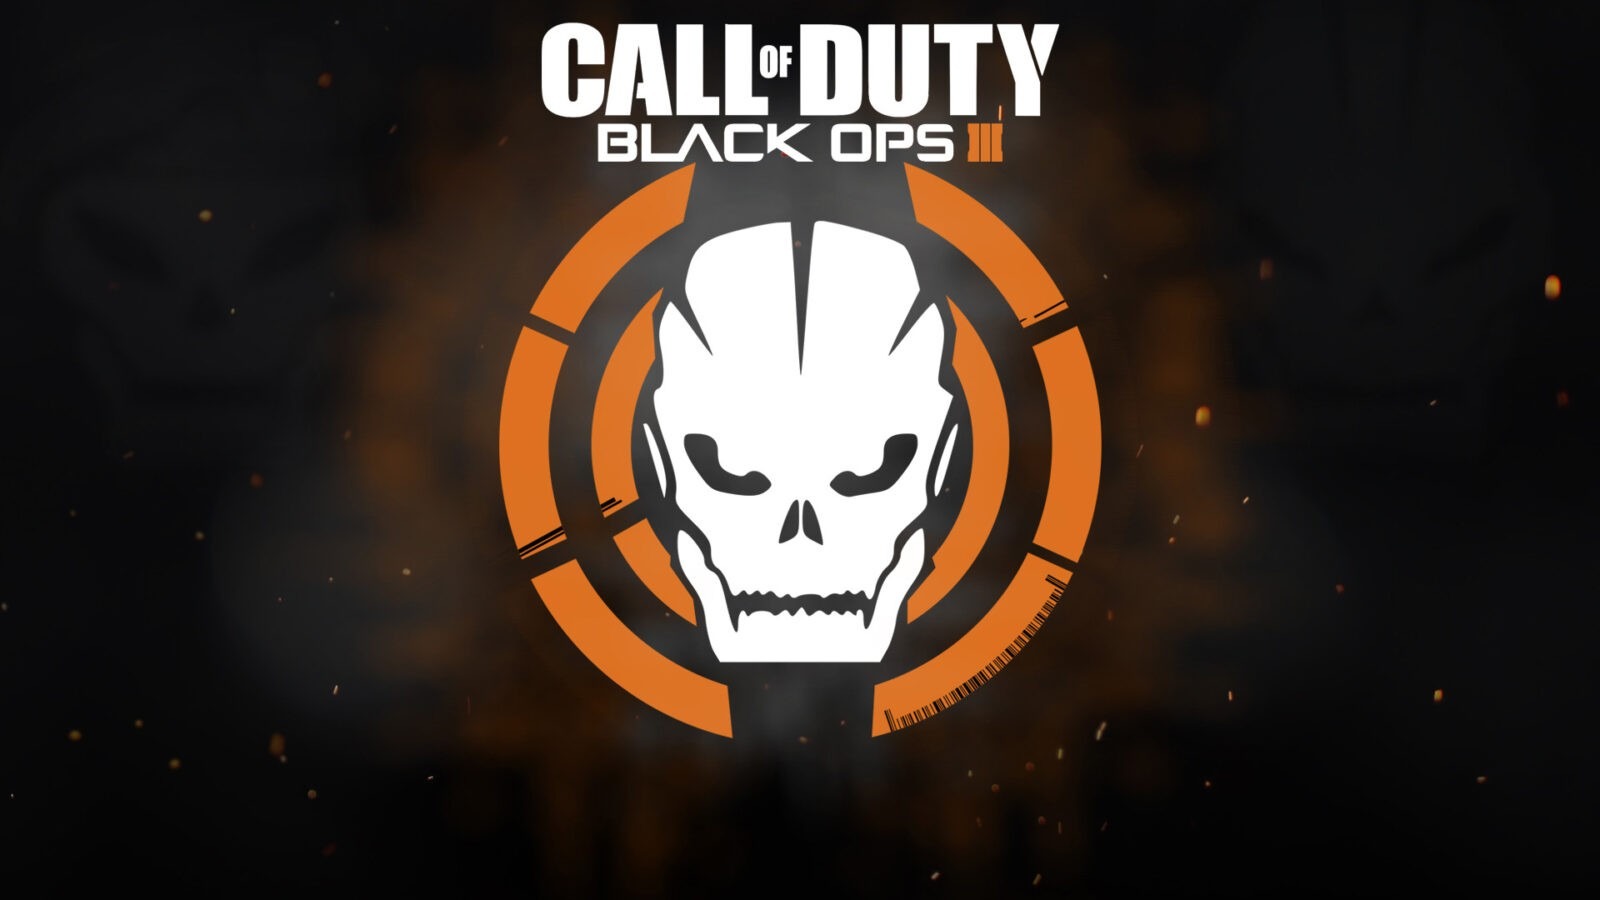 24+ Call of Duty Black Ops 3 wallpapers HD free Download Pictures Of Duty